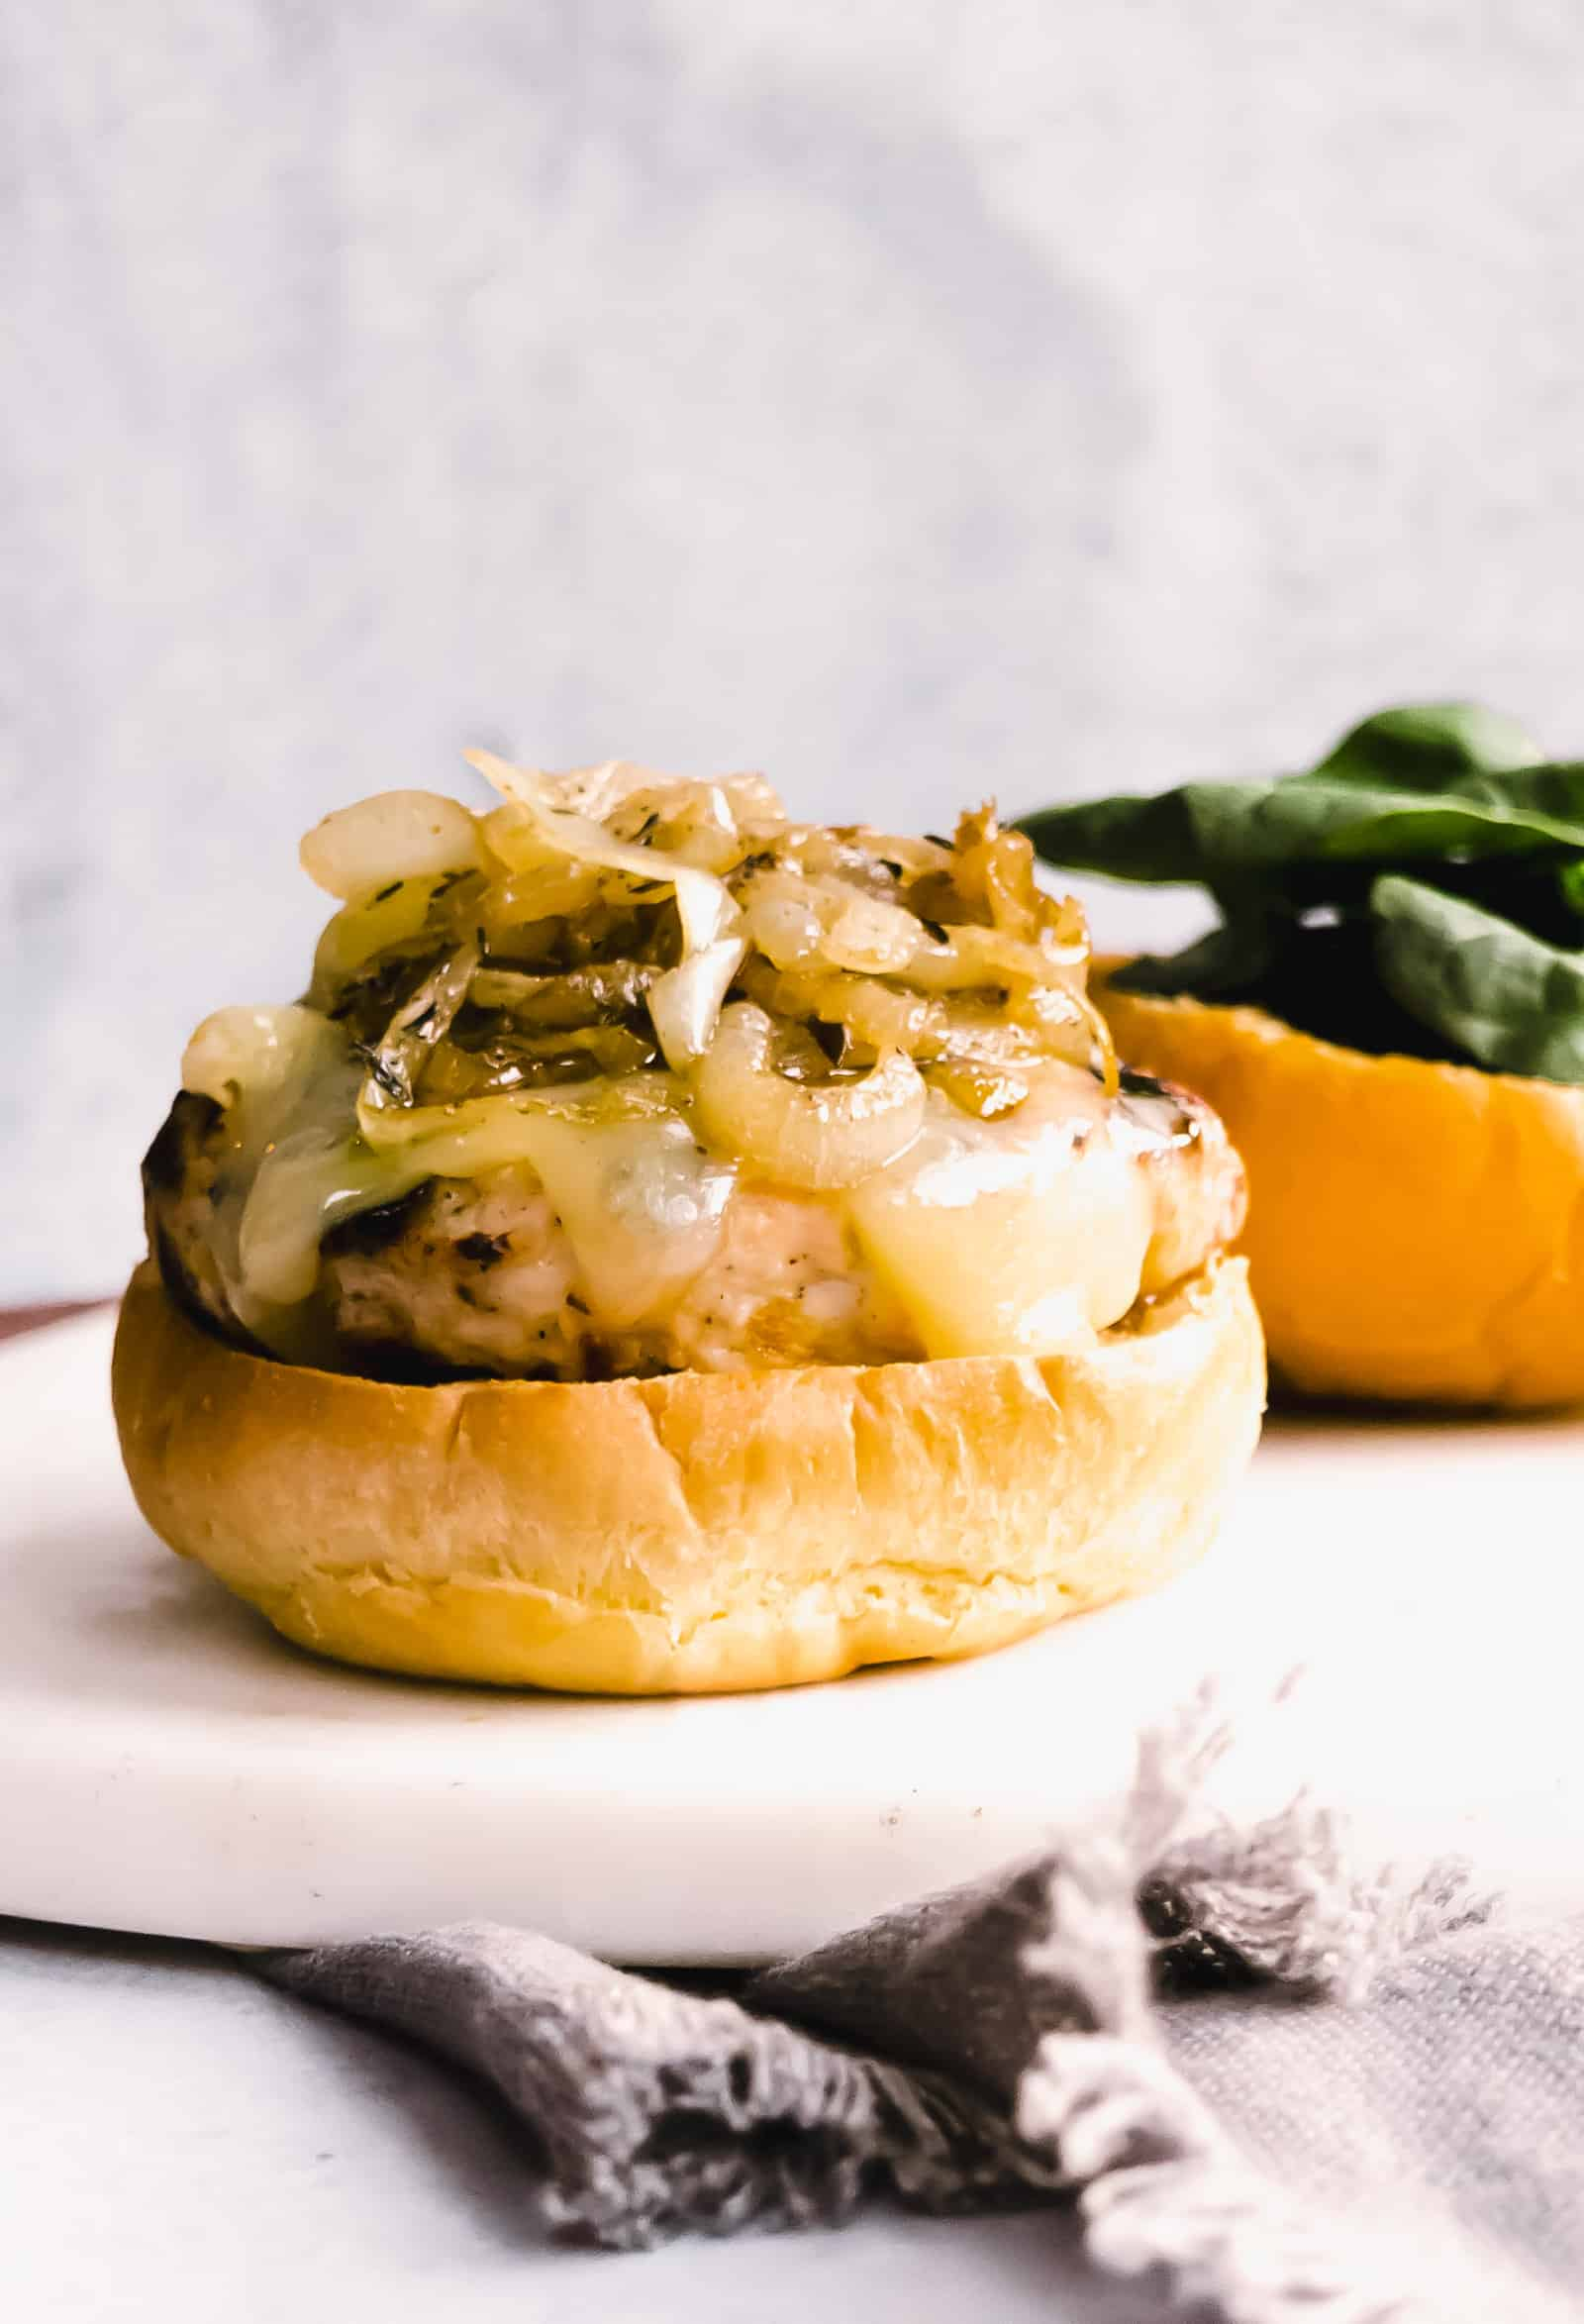 open-faced burger with caramelized onions on top